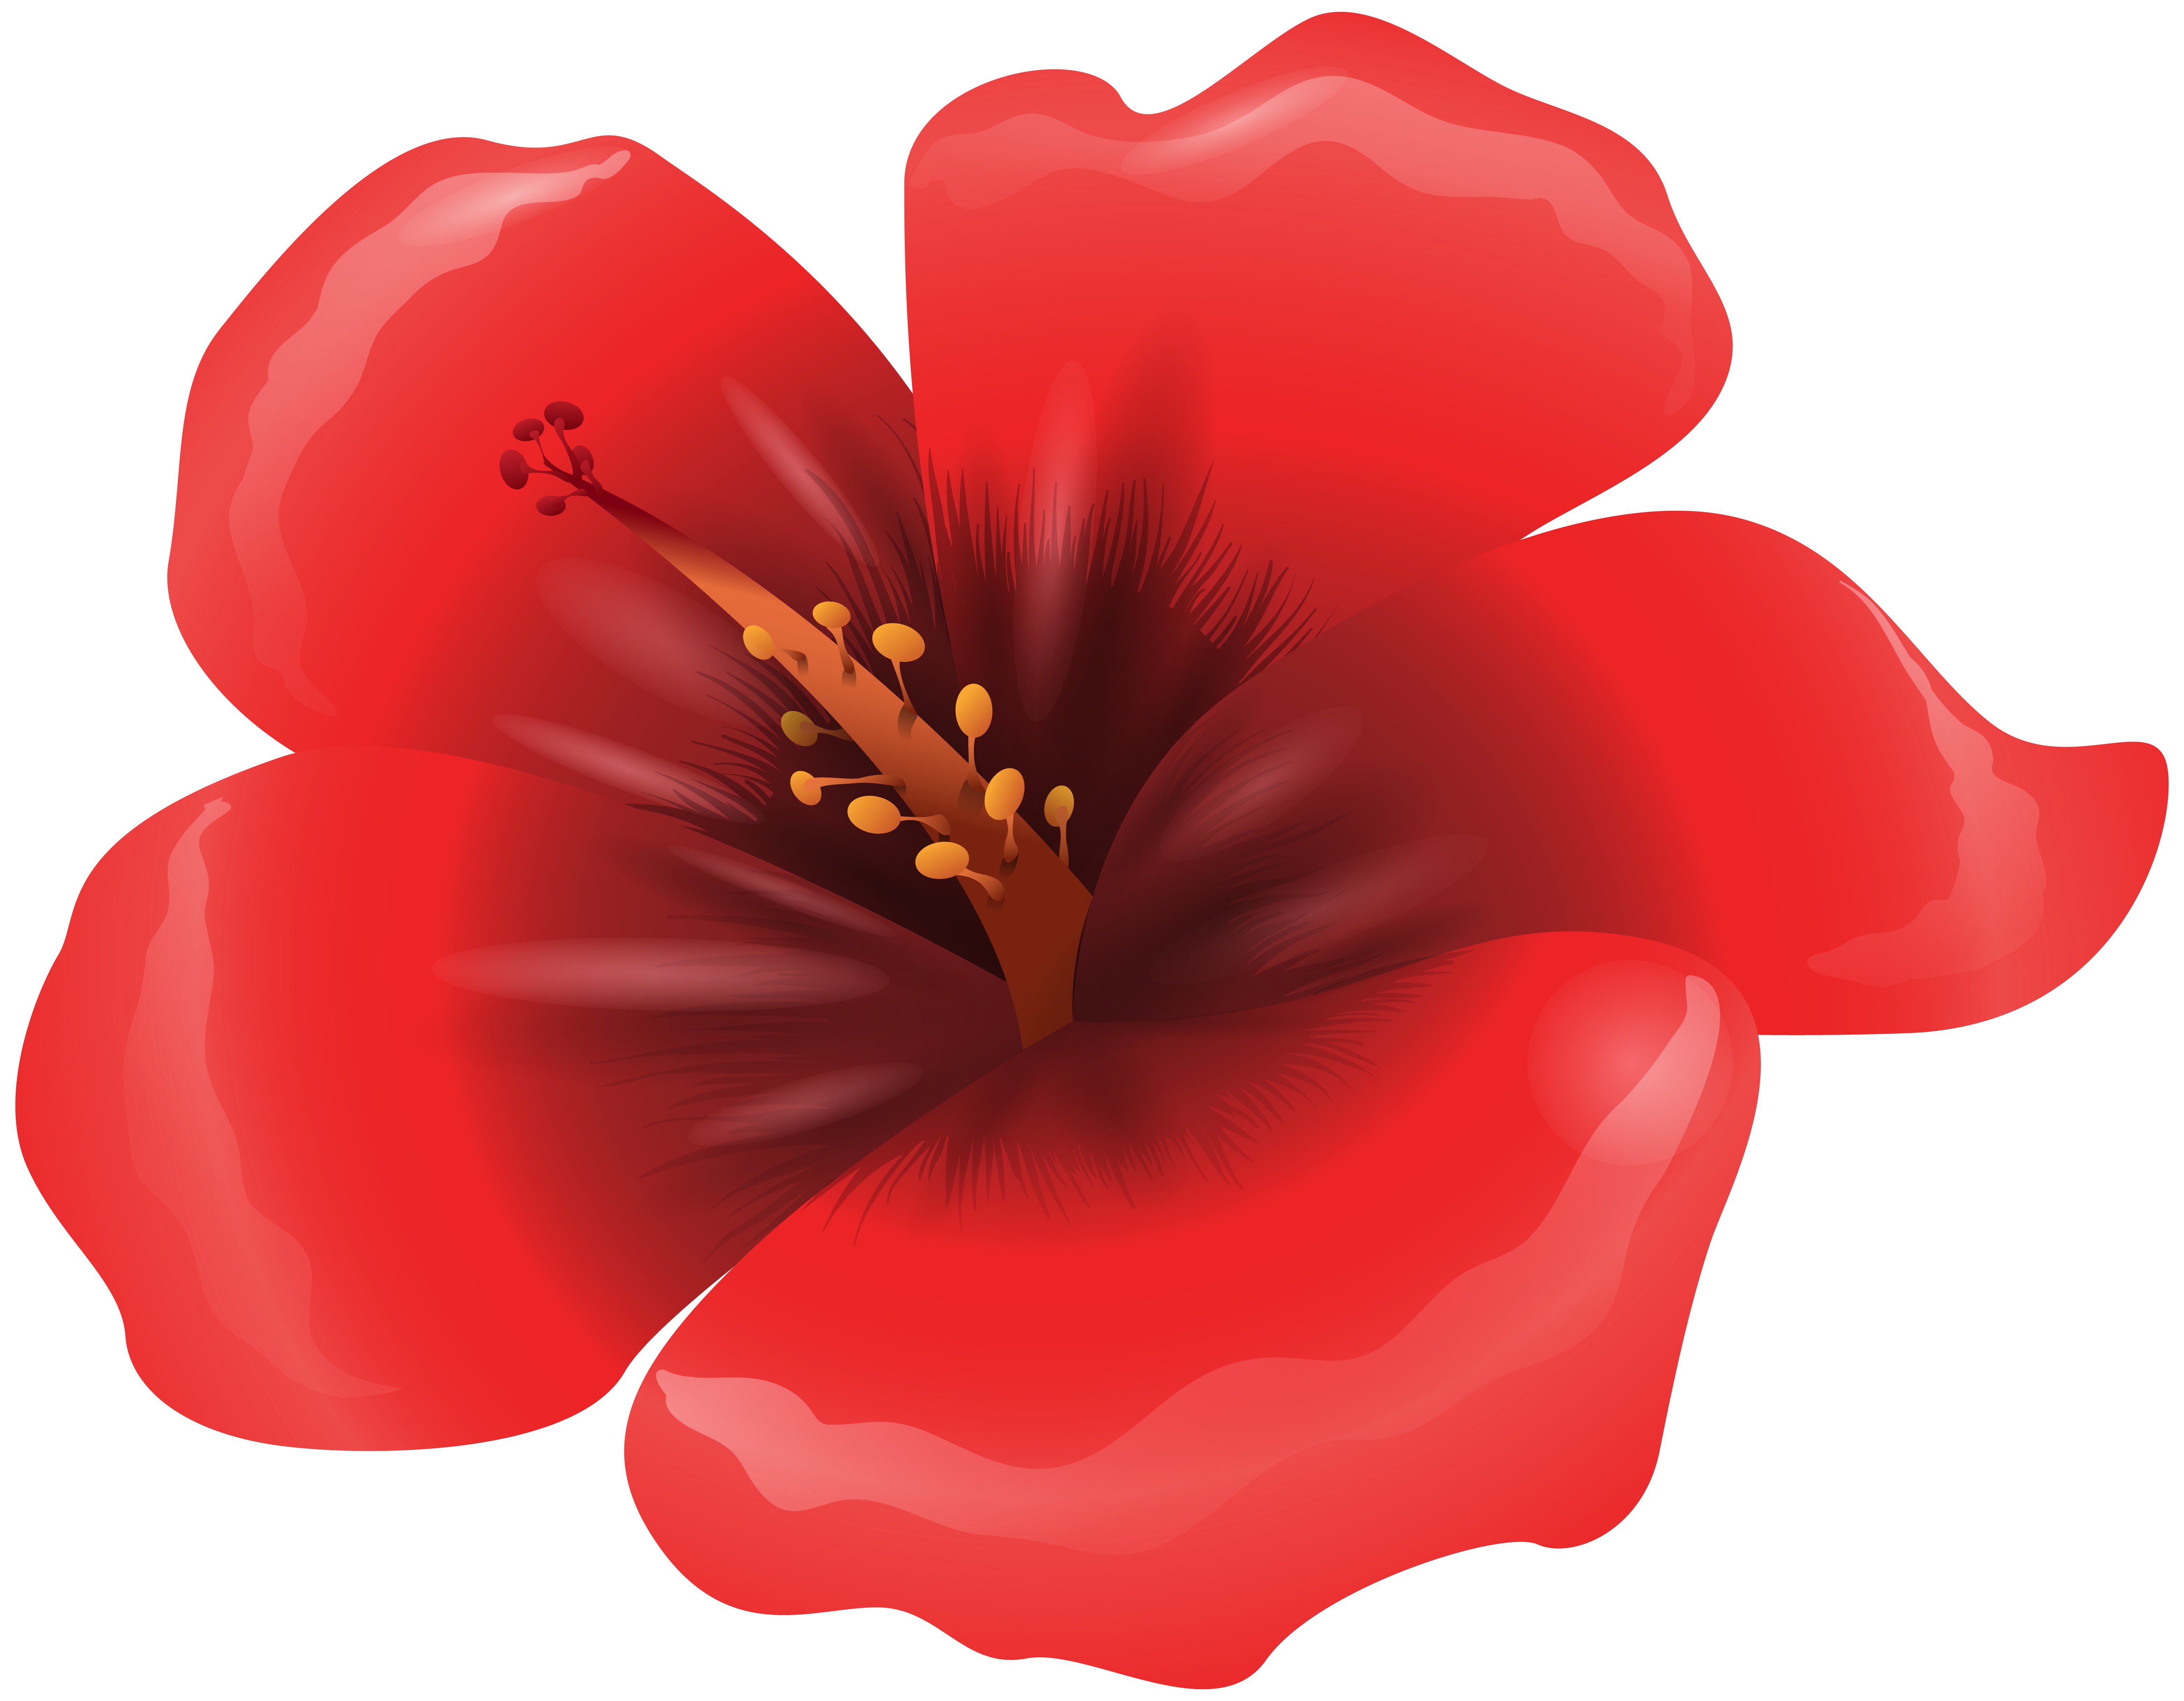 Large Red Flower Clipart PNG Image.